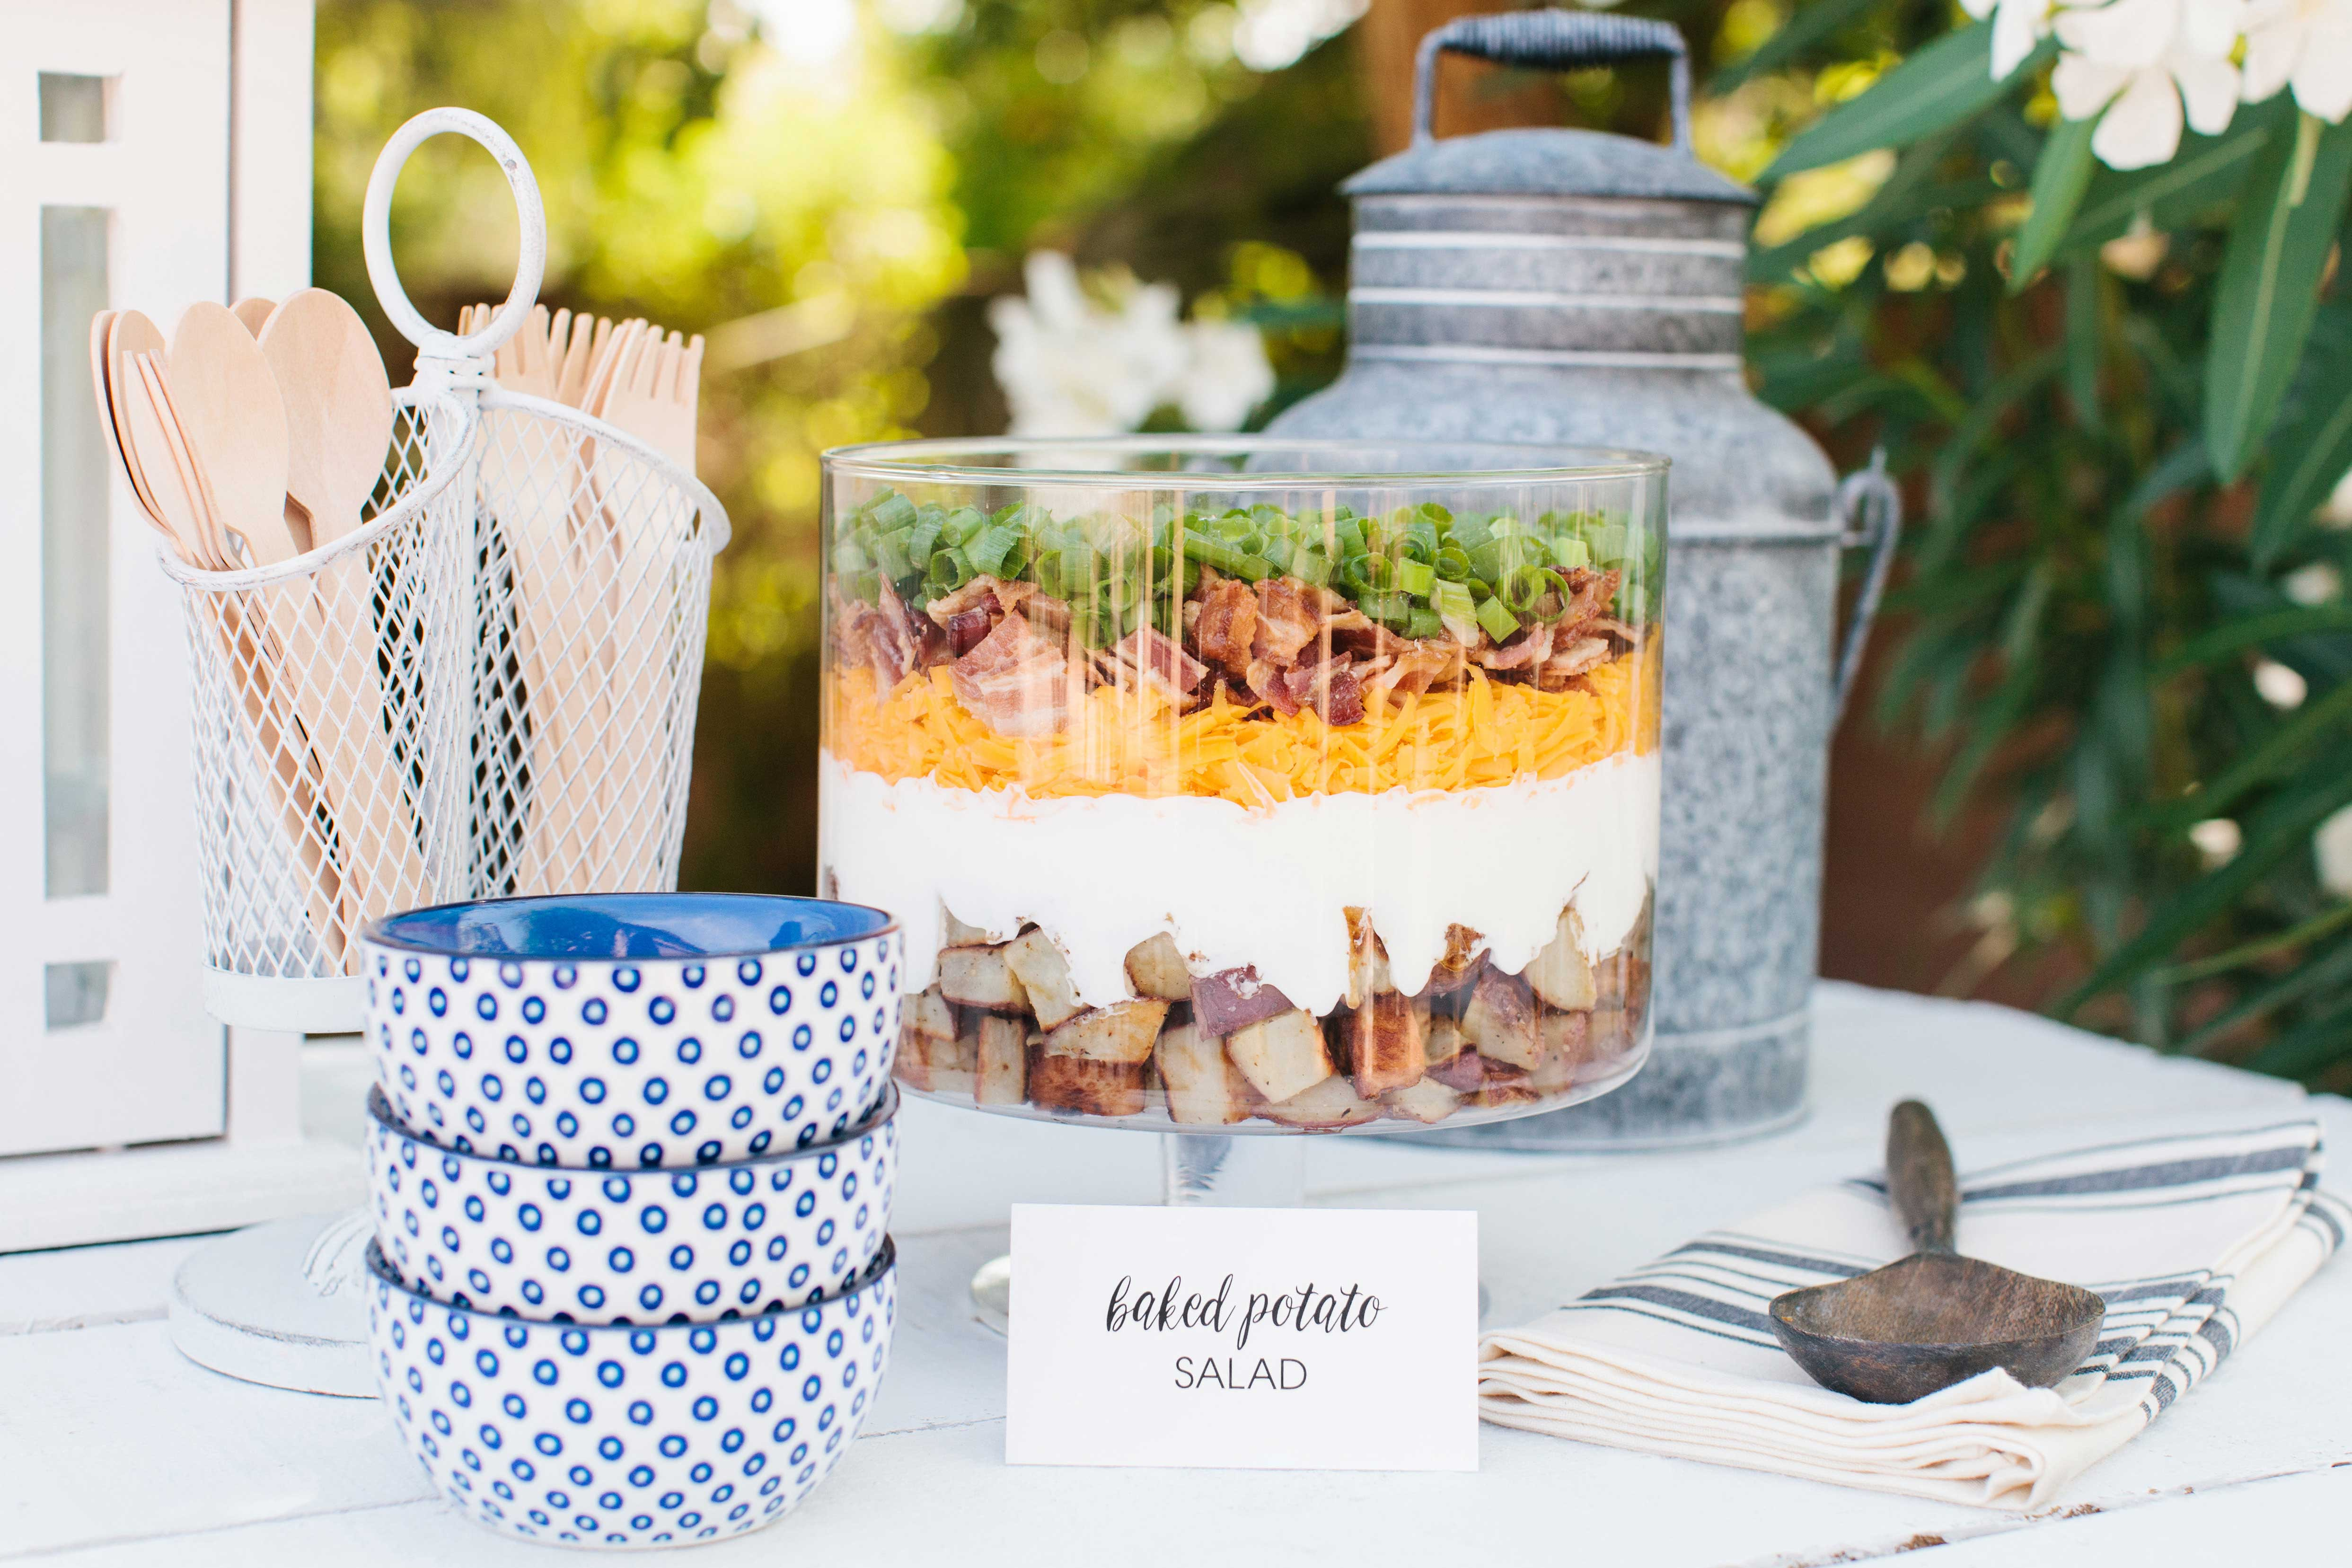 Layered potato salad display at outdoor event for summer wedding